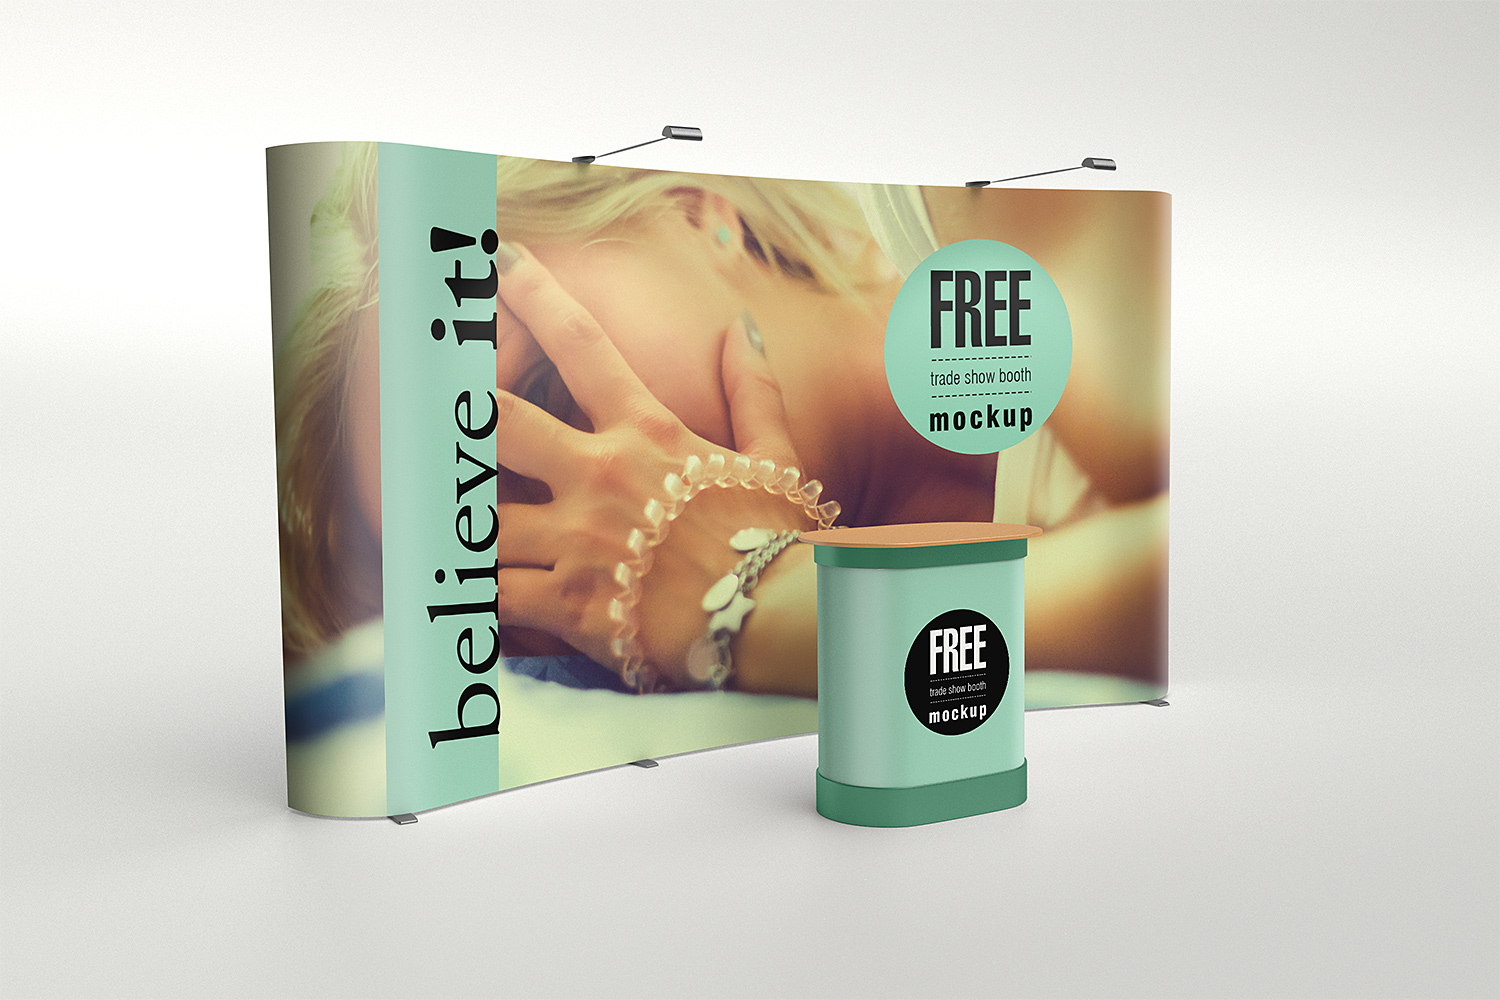 Exhibition Stand Mockup Psd Free : Trade show booth mockup free mockup